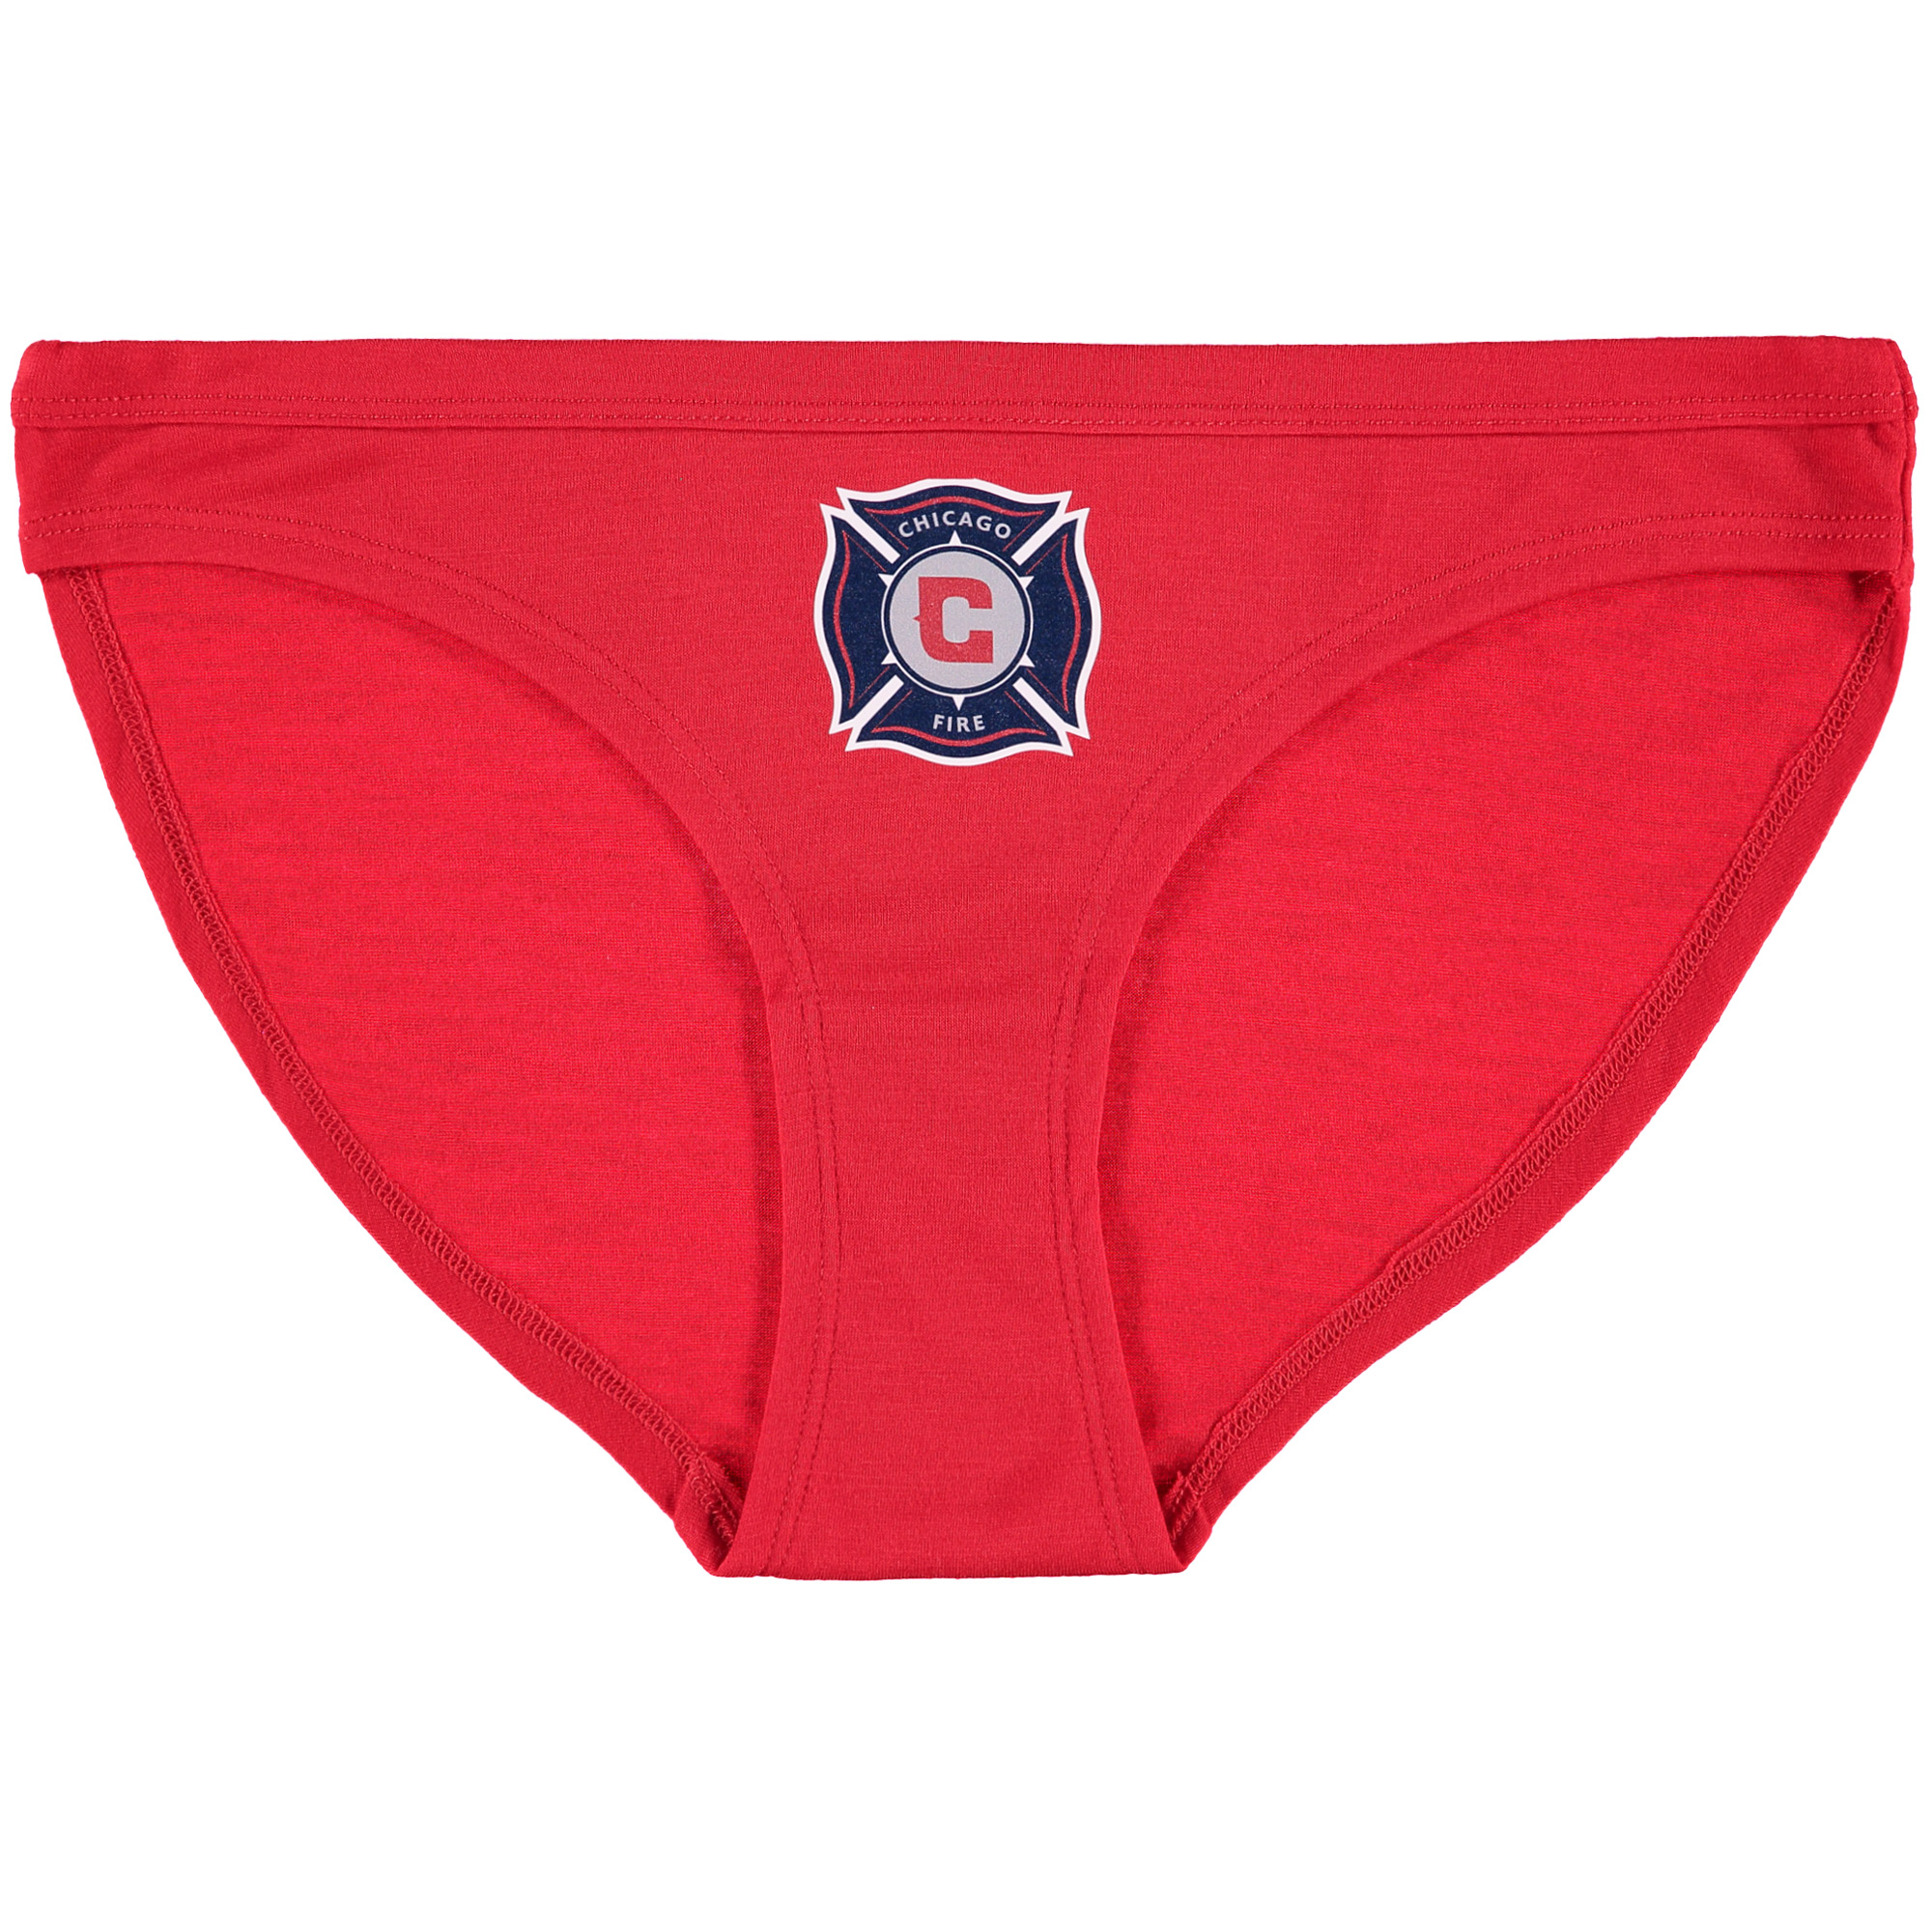 Chicago Fire Concepts Sport Women's Tradition Panty - Red